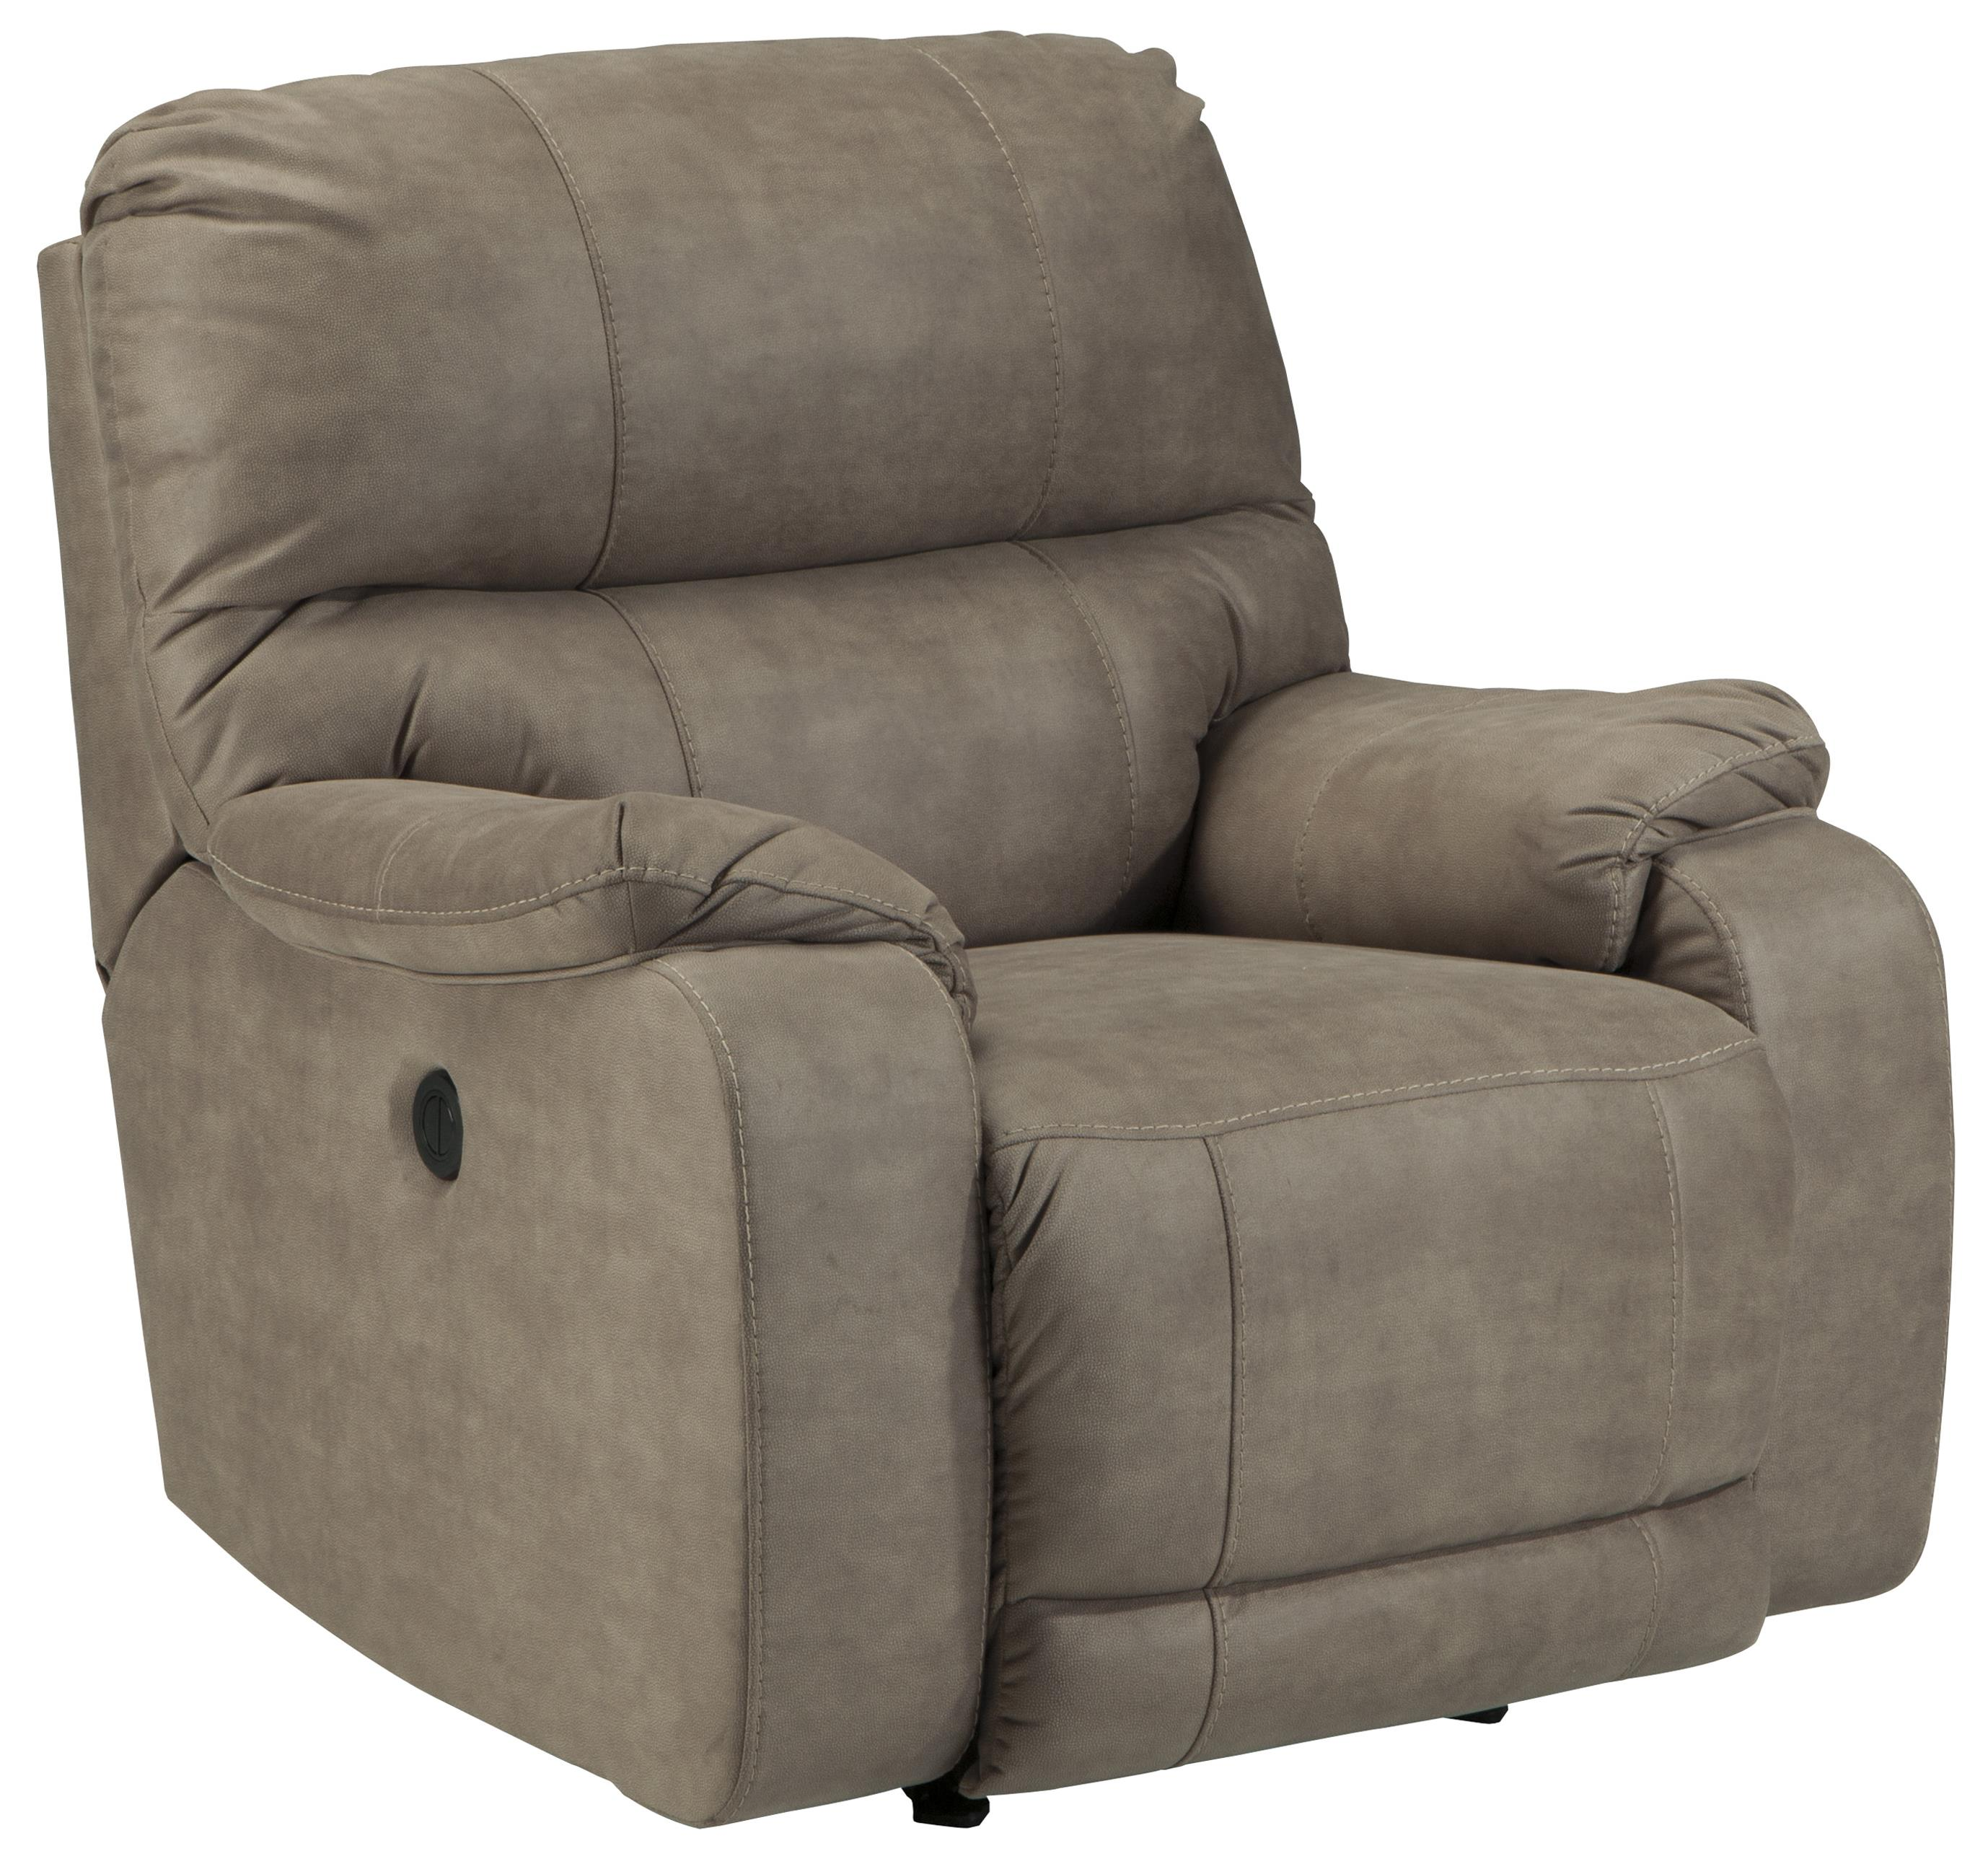 Benchcraft Bohannon Power Rocker Recliner - Item Number: 5740398